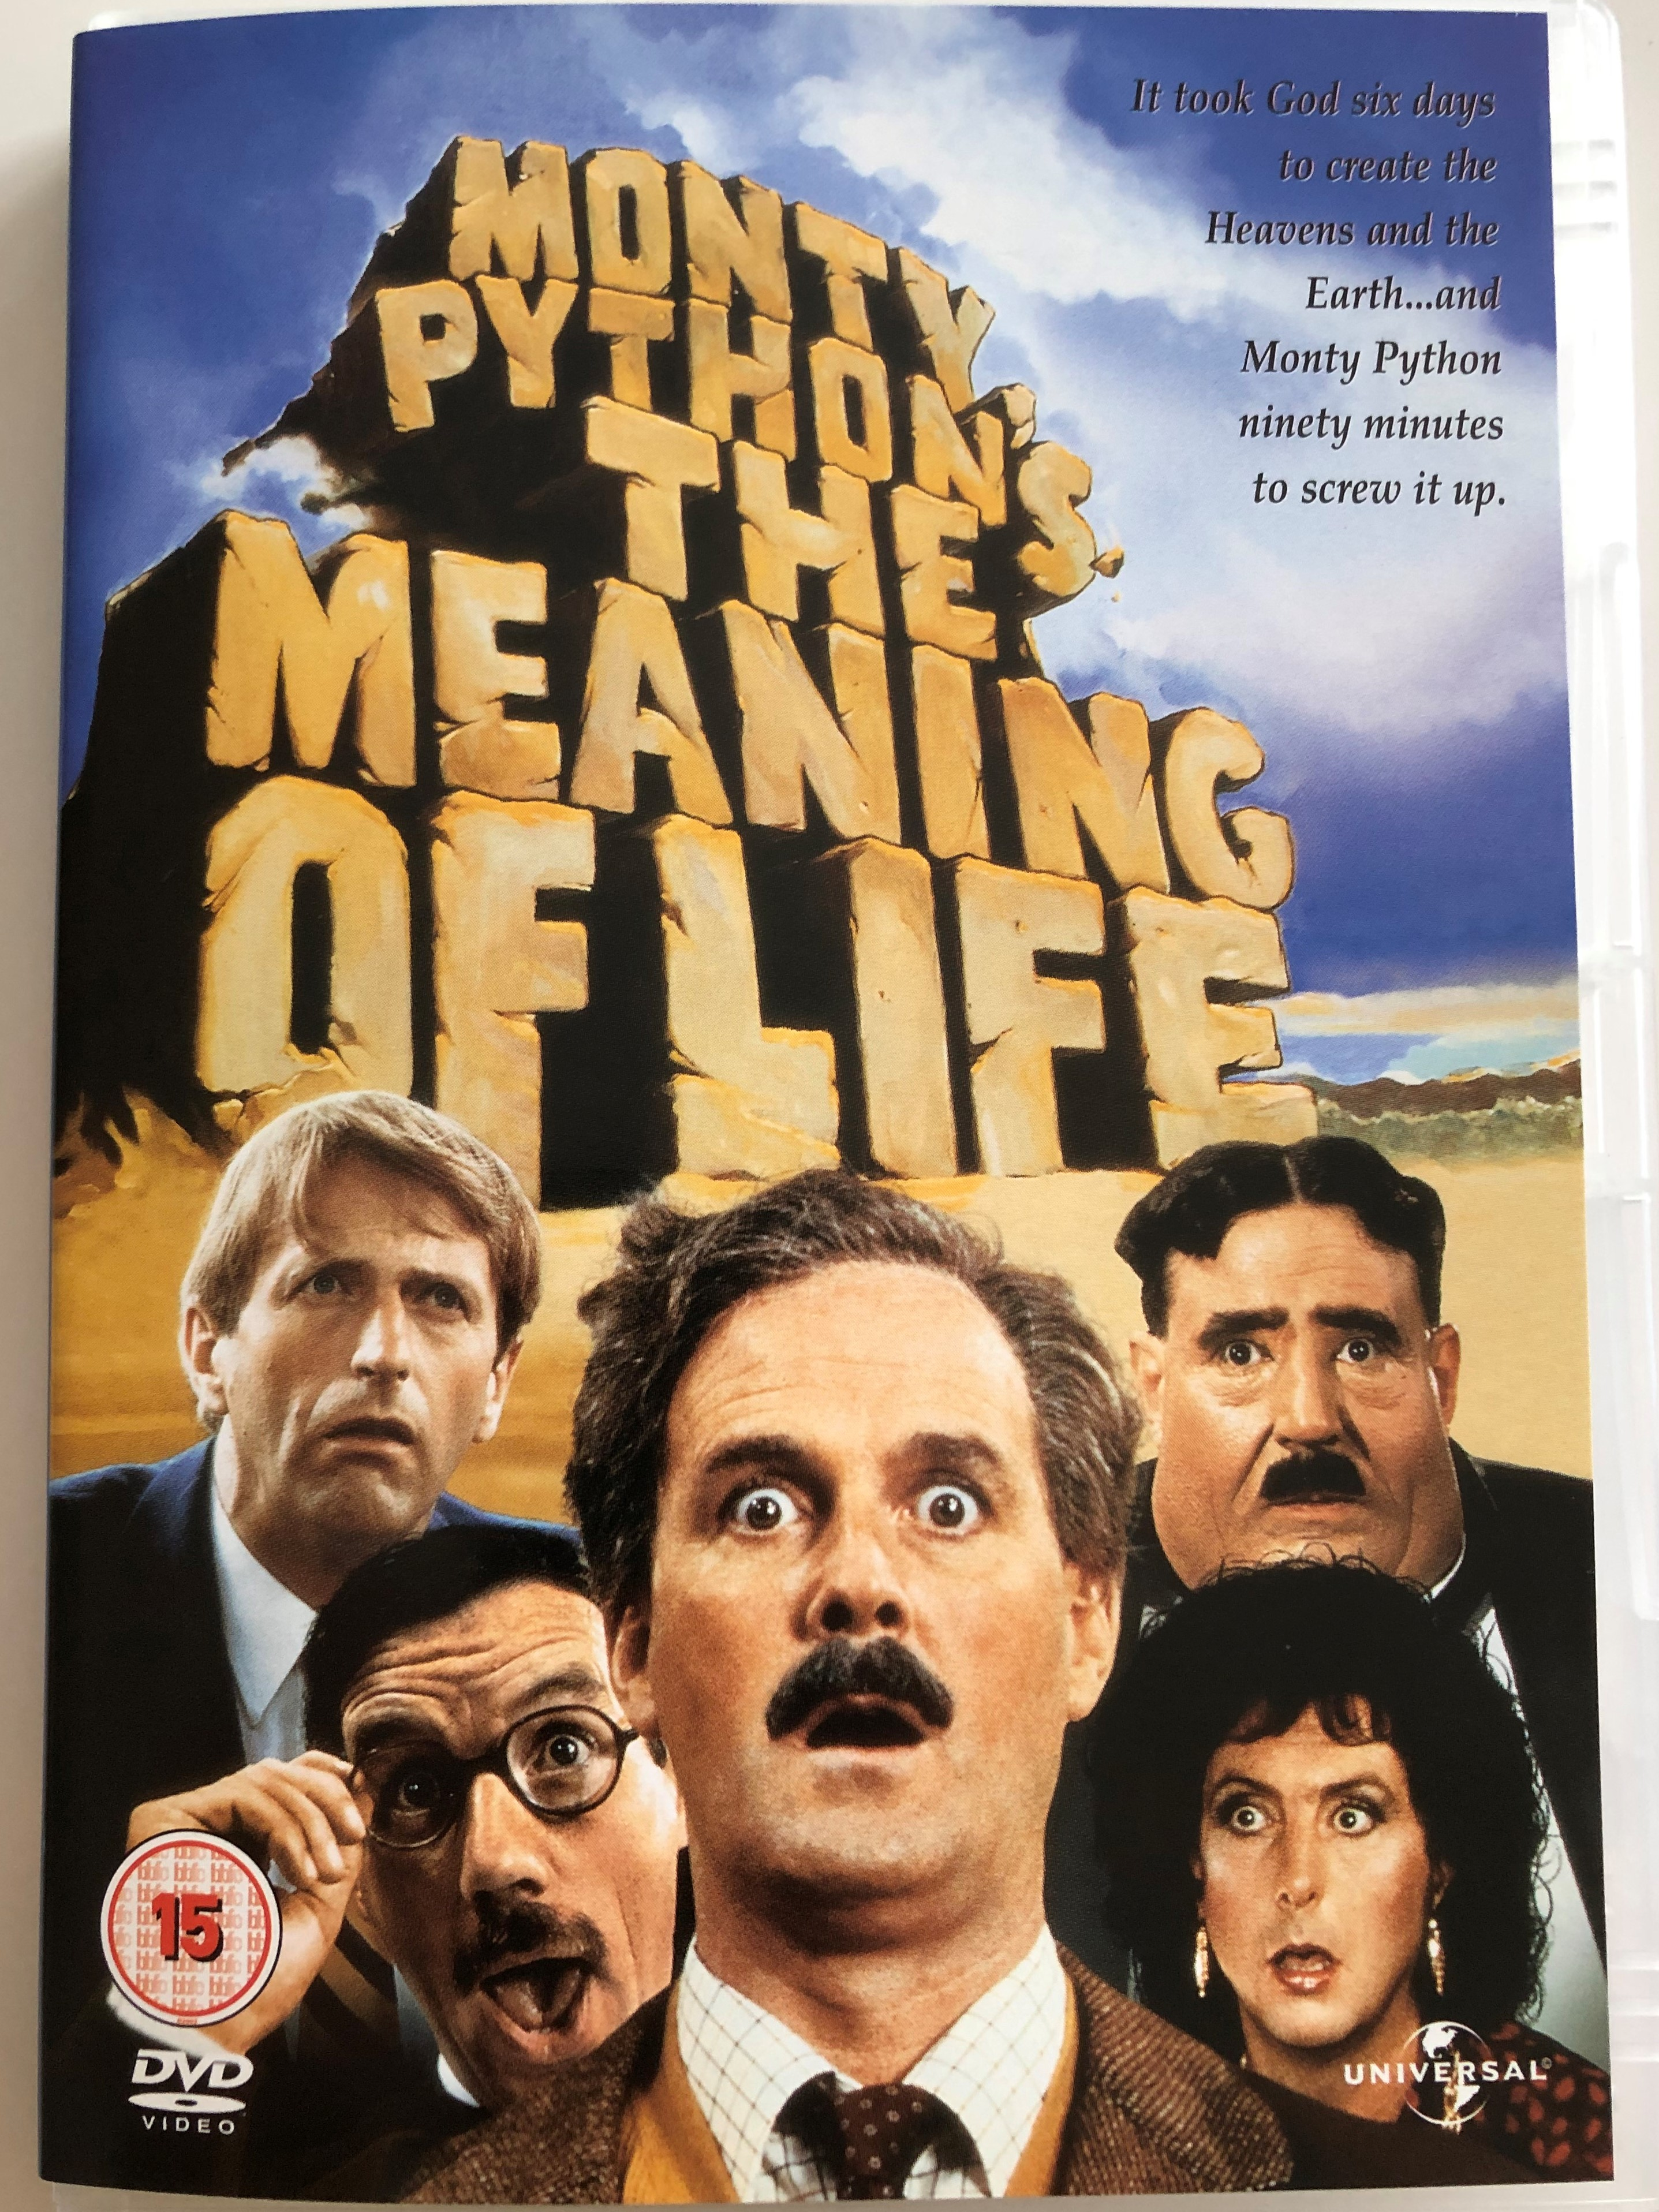 monty-python-s-the-meaning-of-life-dvd-1983-directed-by-terry-jones-1.jpg